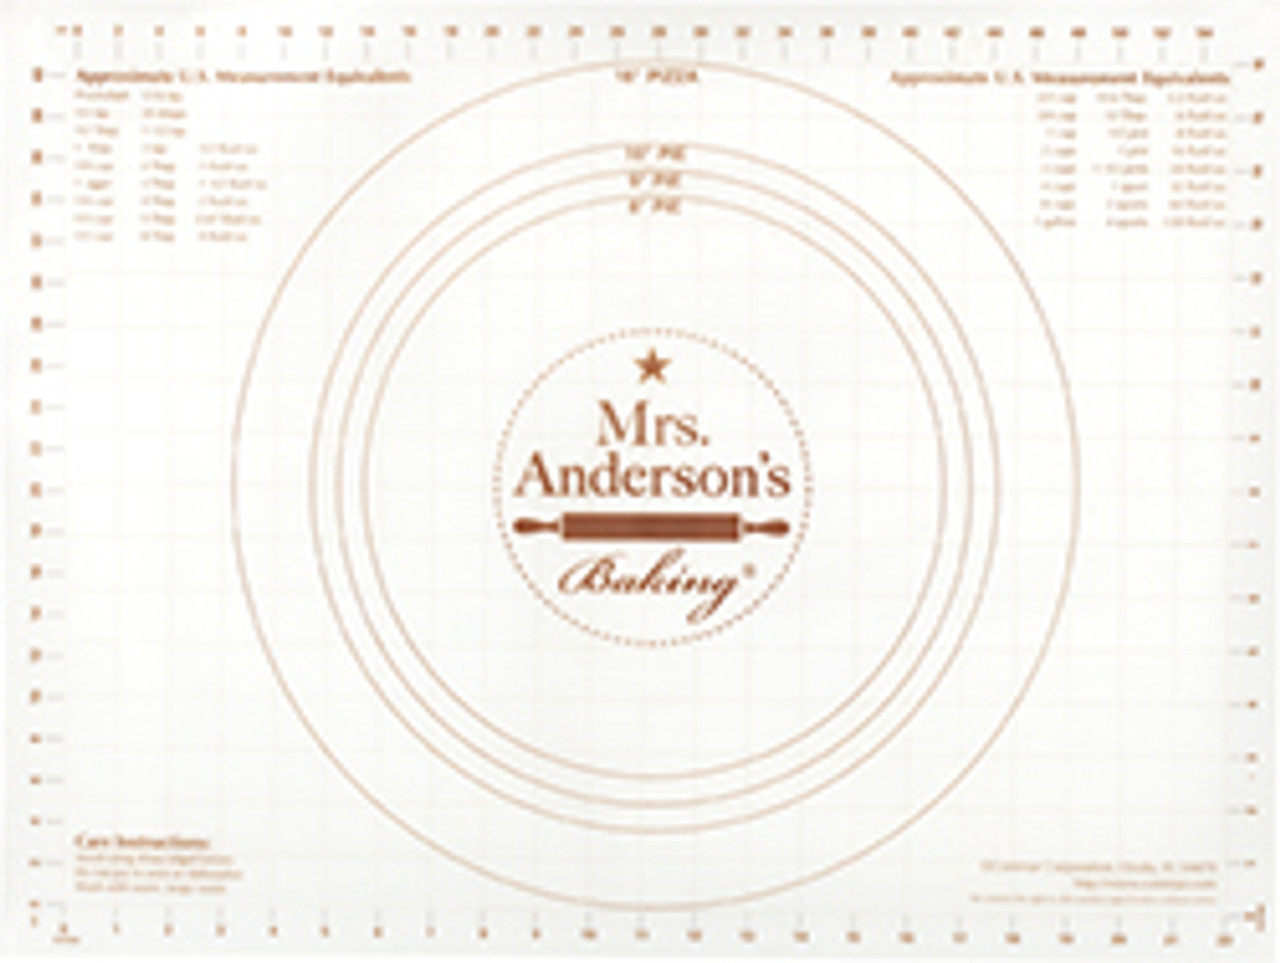 Mrs Anderson's Baking Non-Slip Pastry Rolling Mat